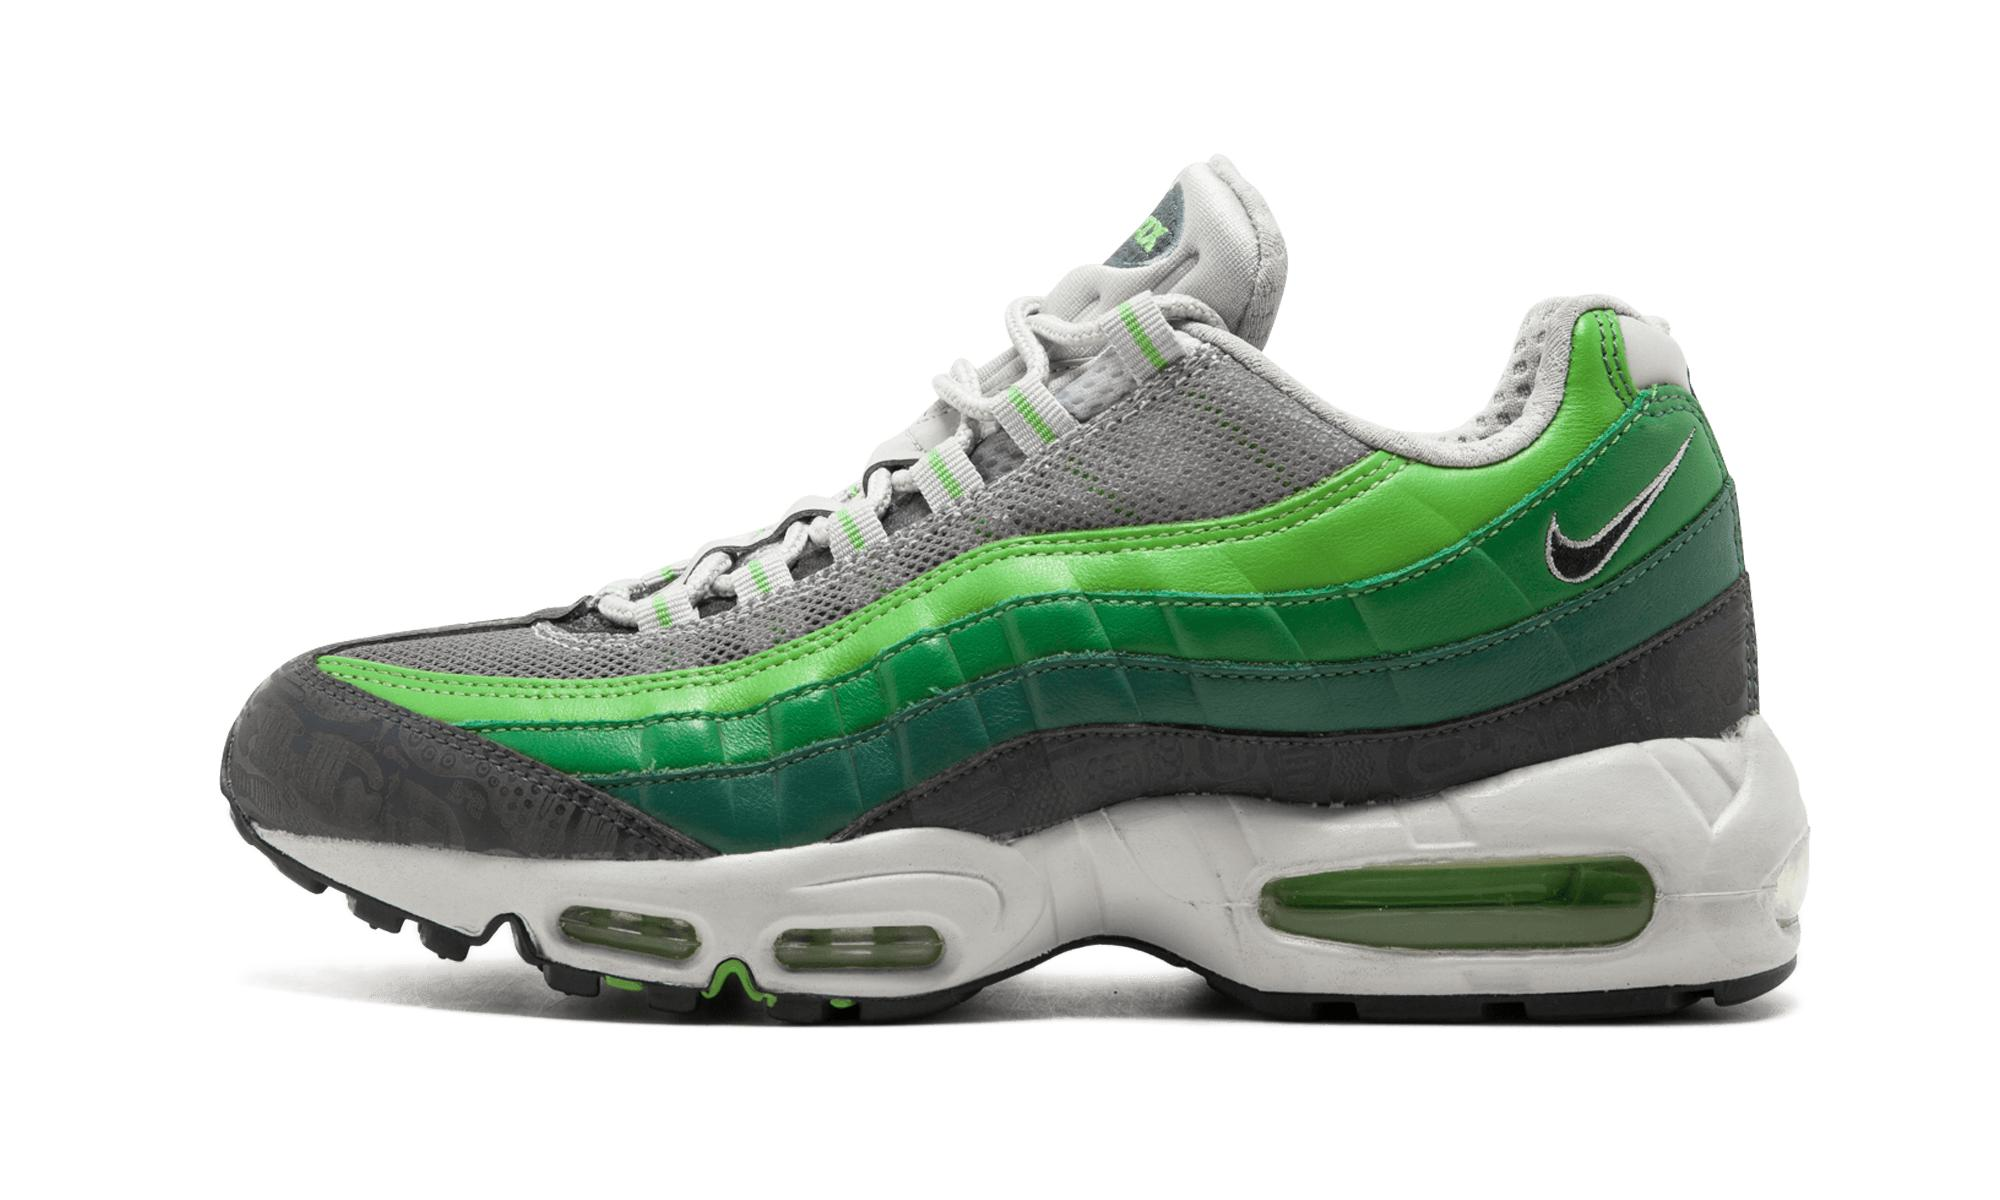 3b7dd71a96d6 Lyst - Nike Air Max 95 Prem Rejuvenation in Green for Men